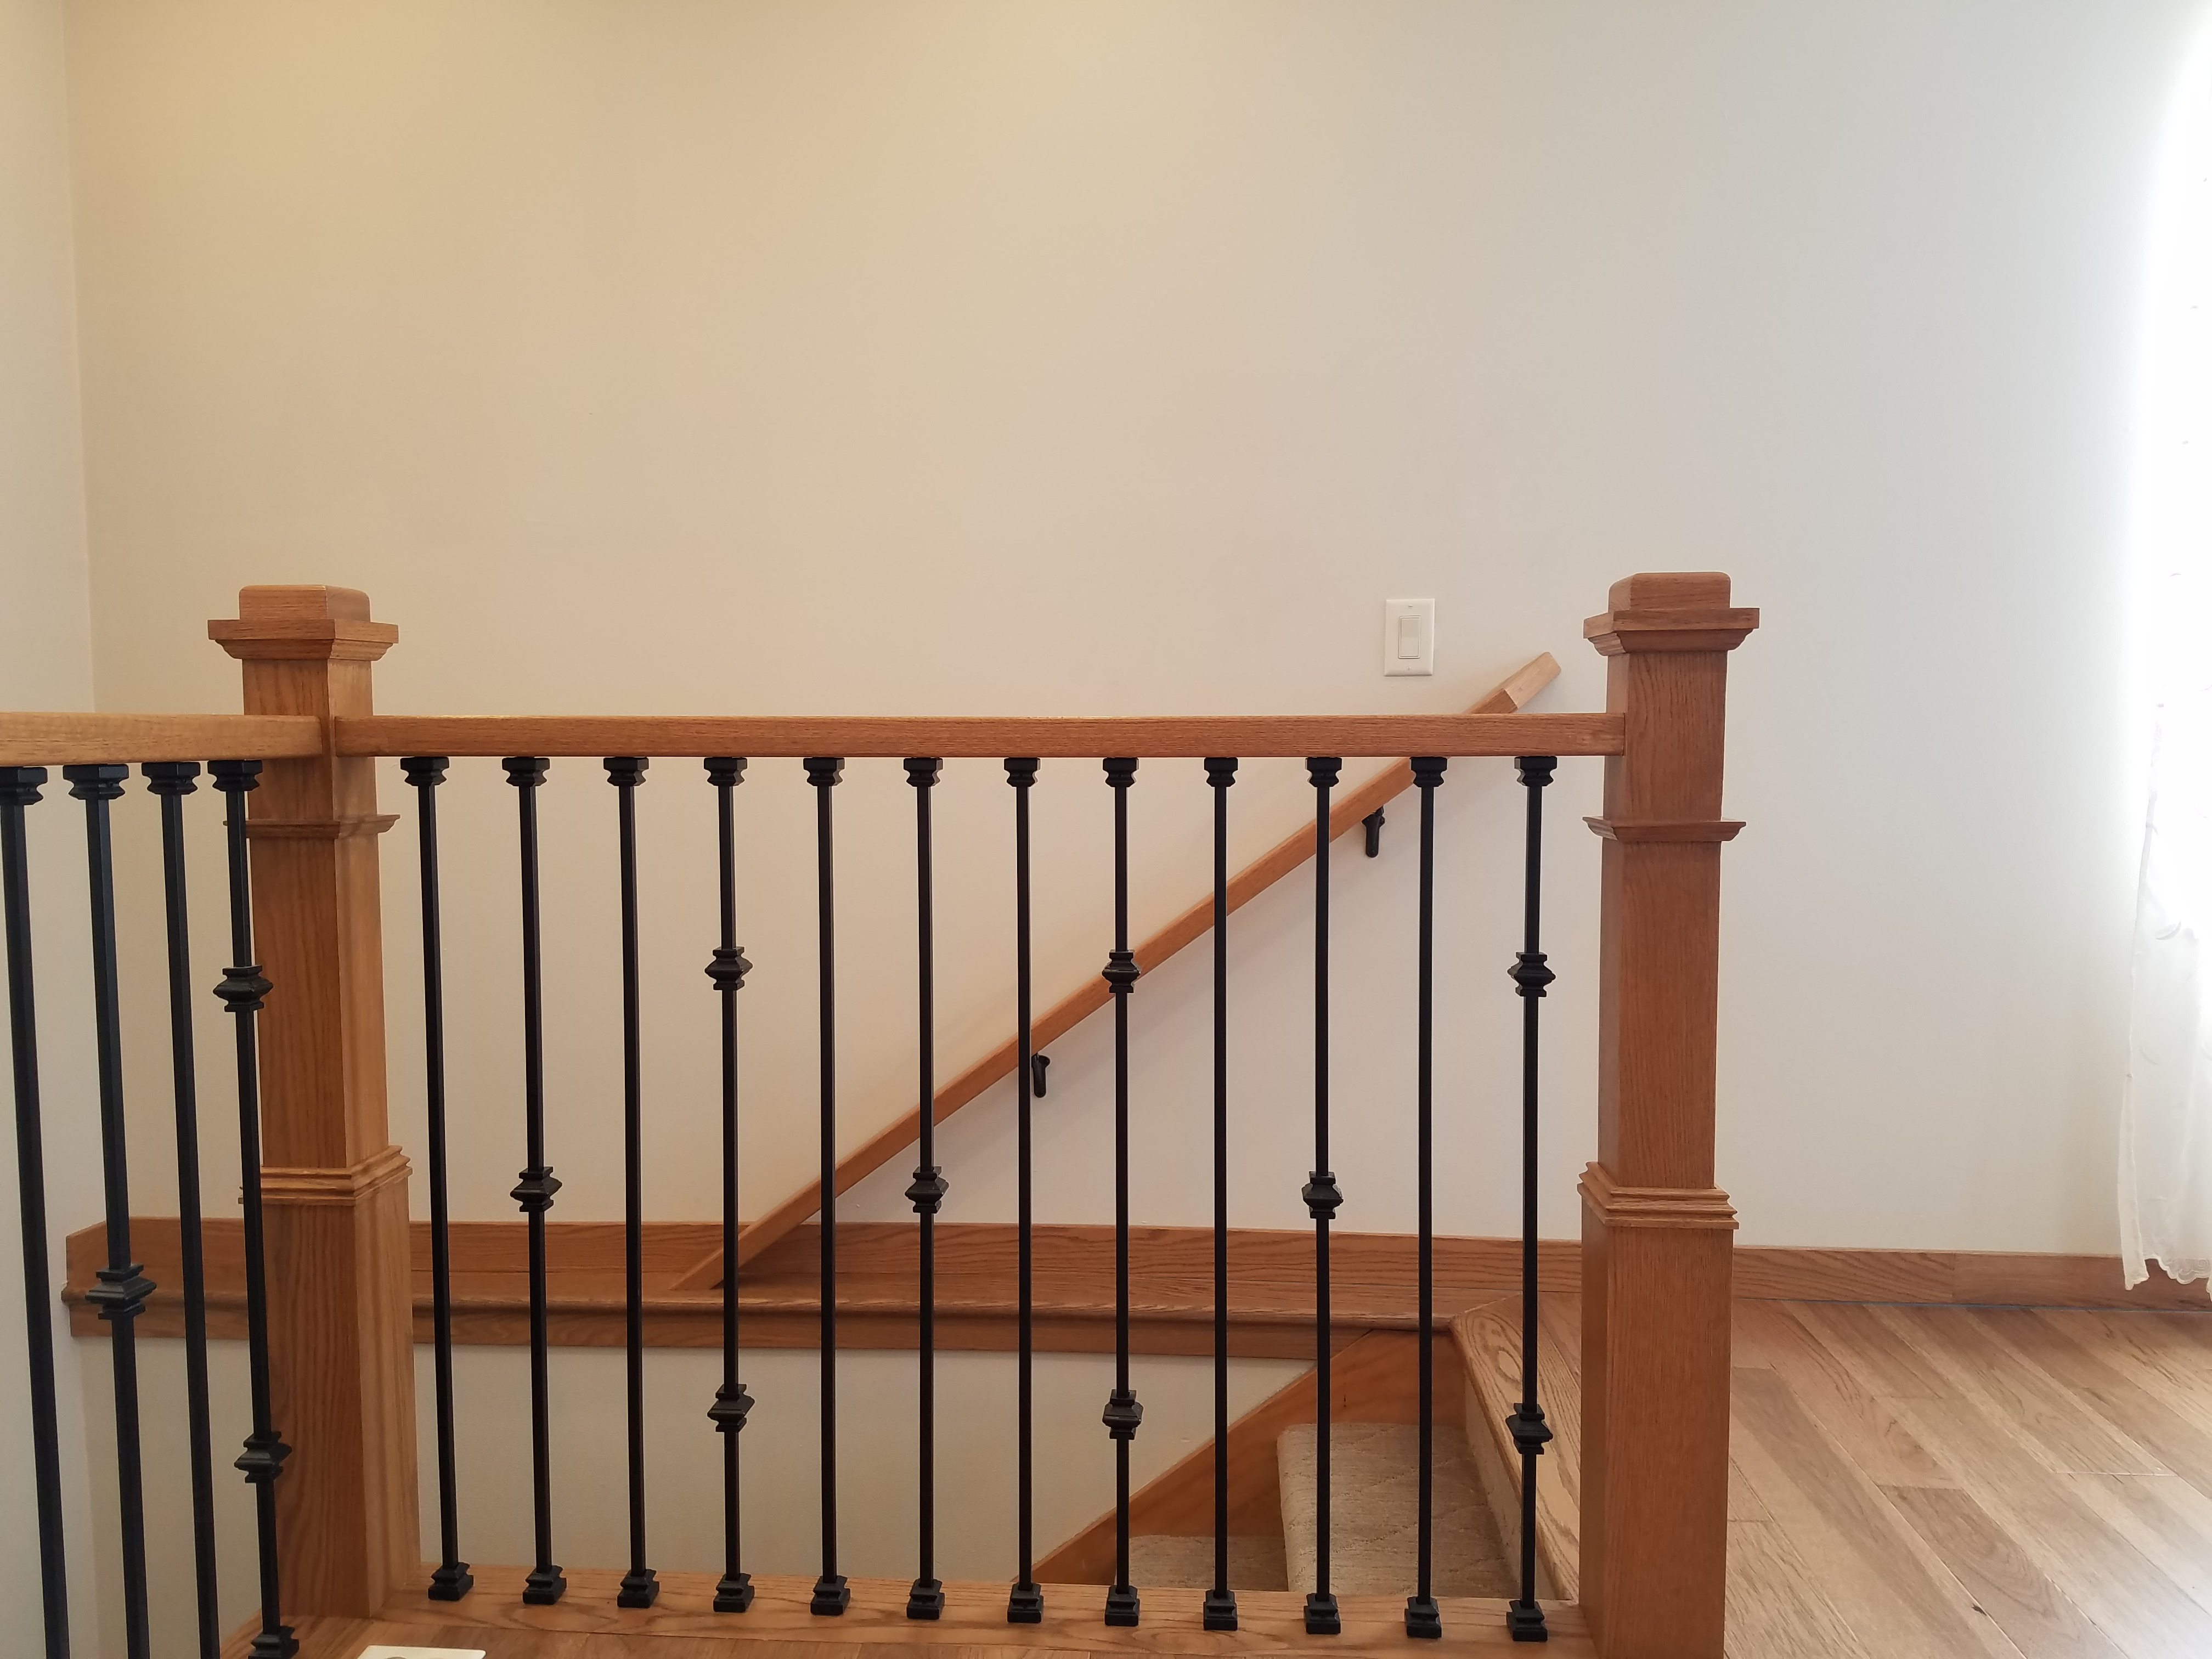 Stained Newel Posts-Stained to Match